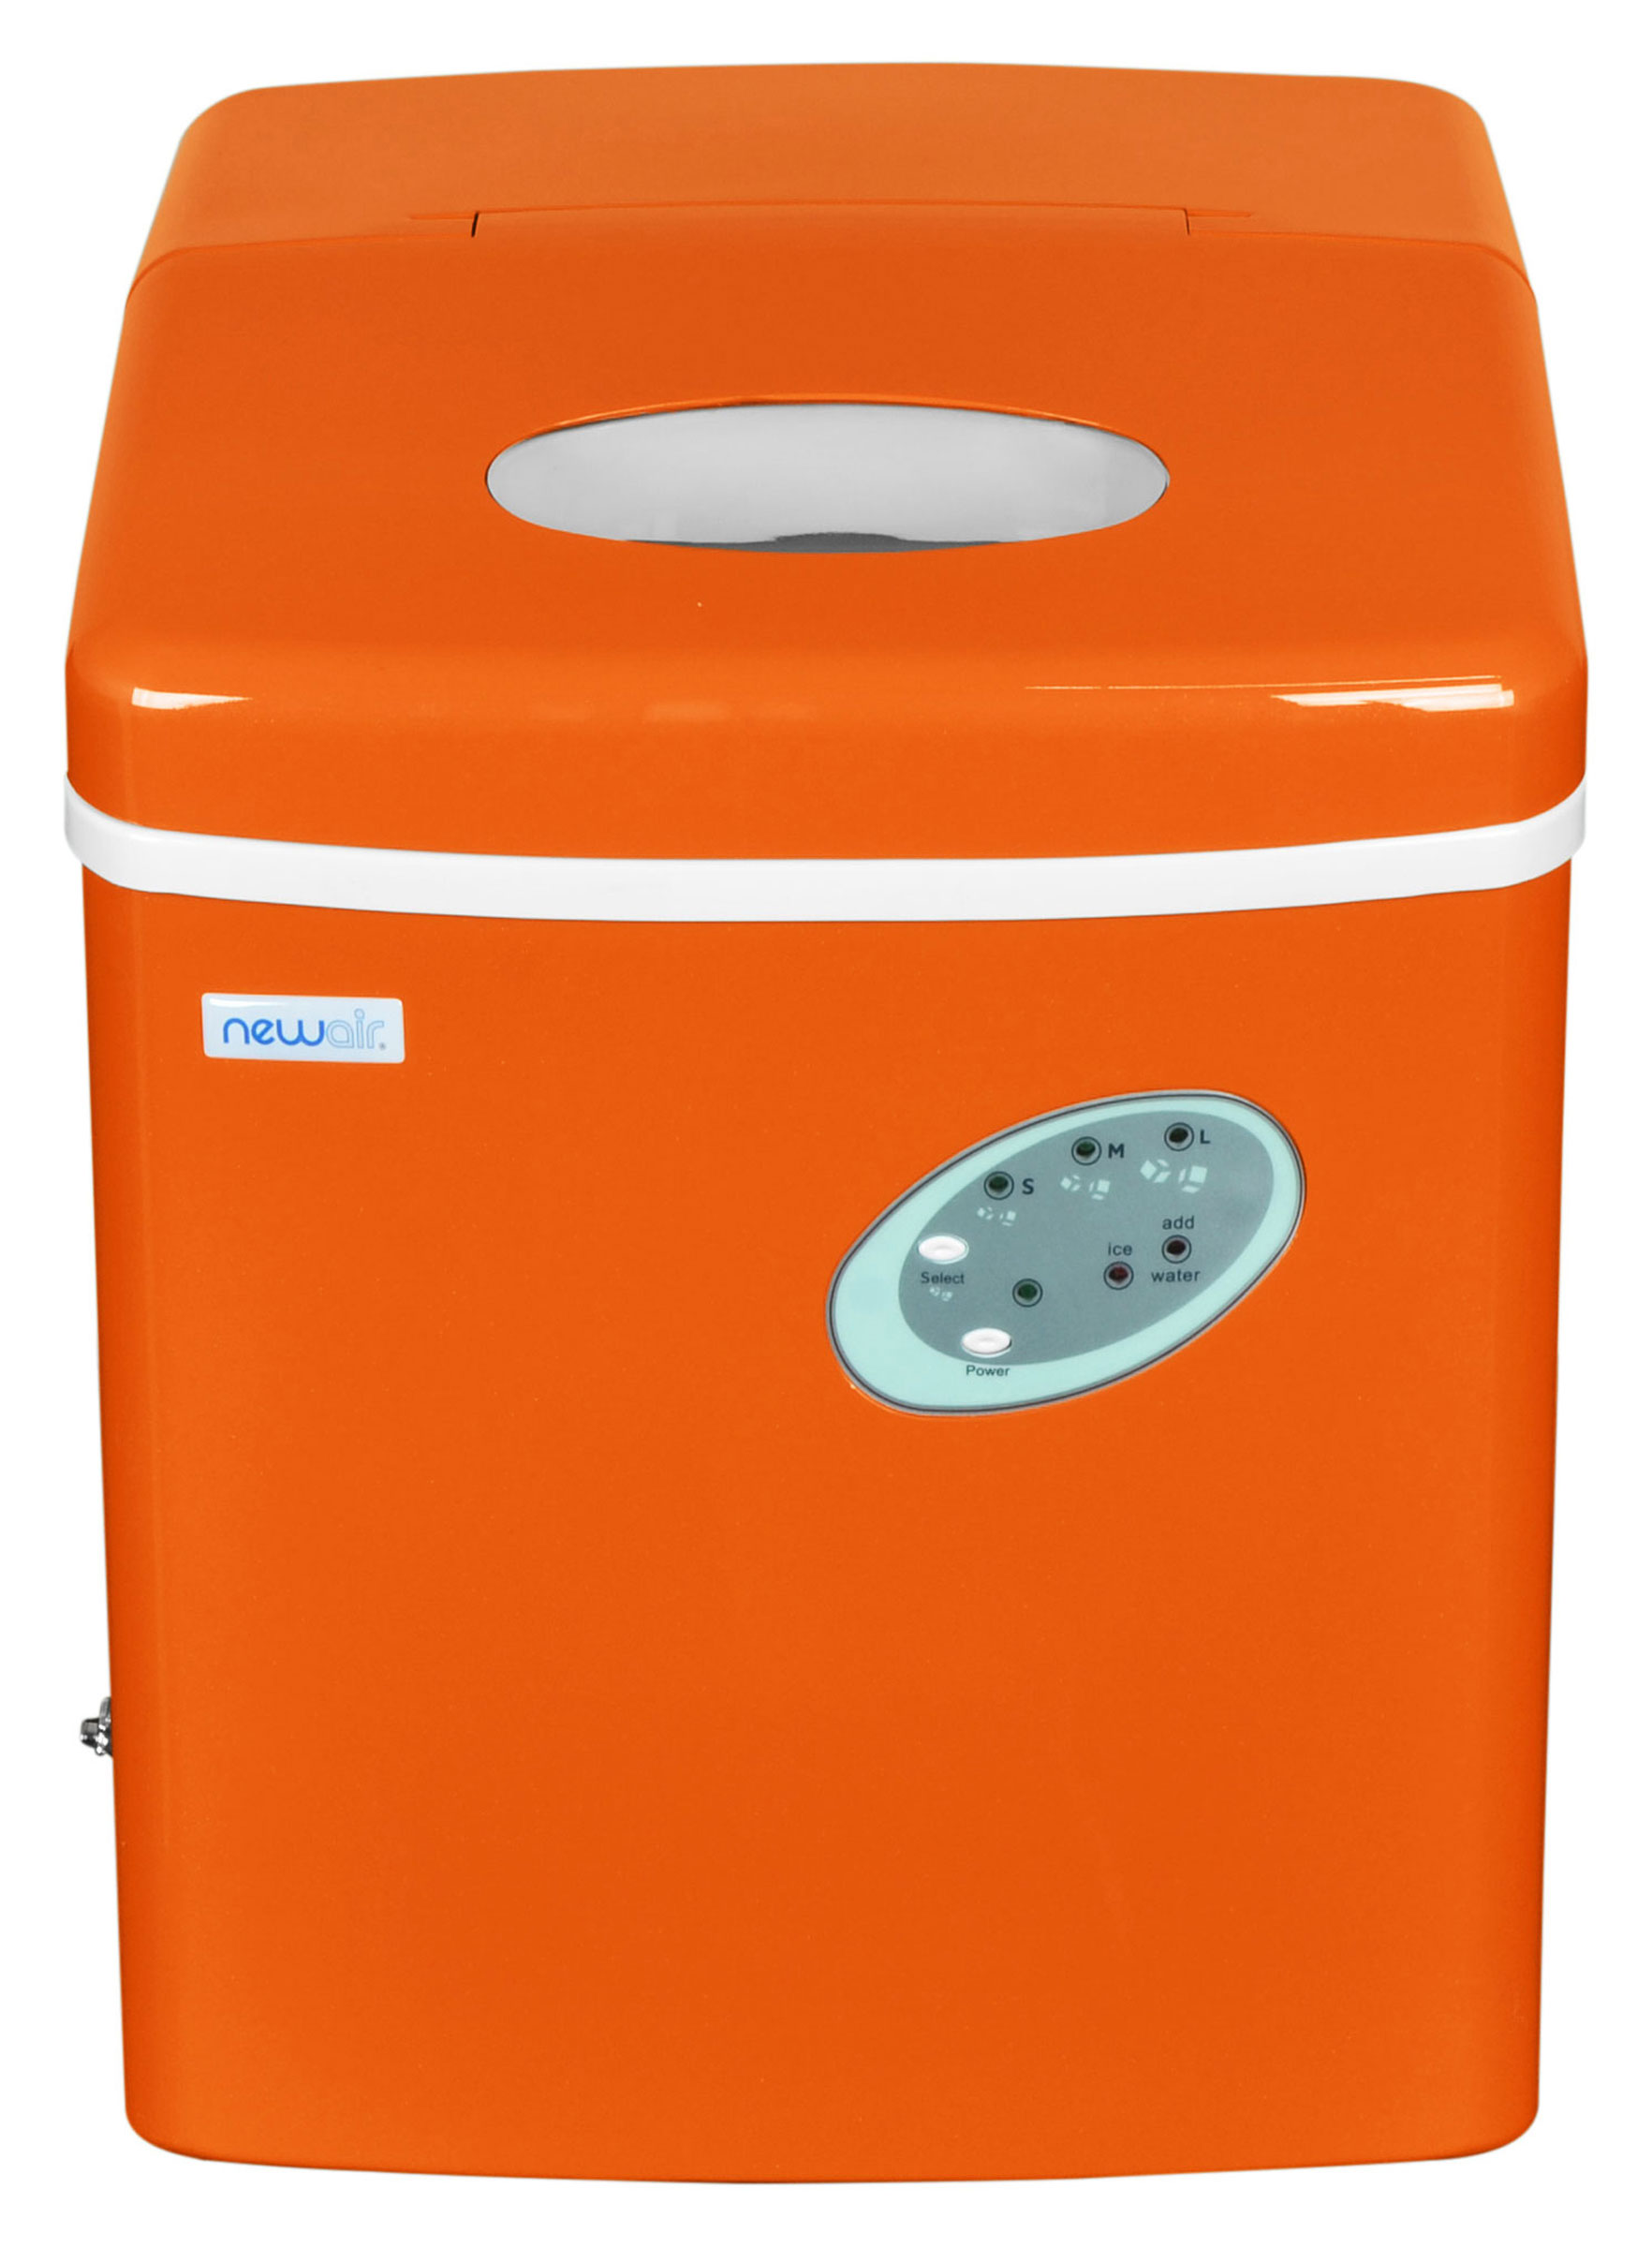 NEWAIR AI-100VO Portable Vermilion Orangel Ice Maker 28 lbs/day